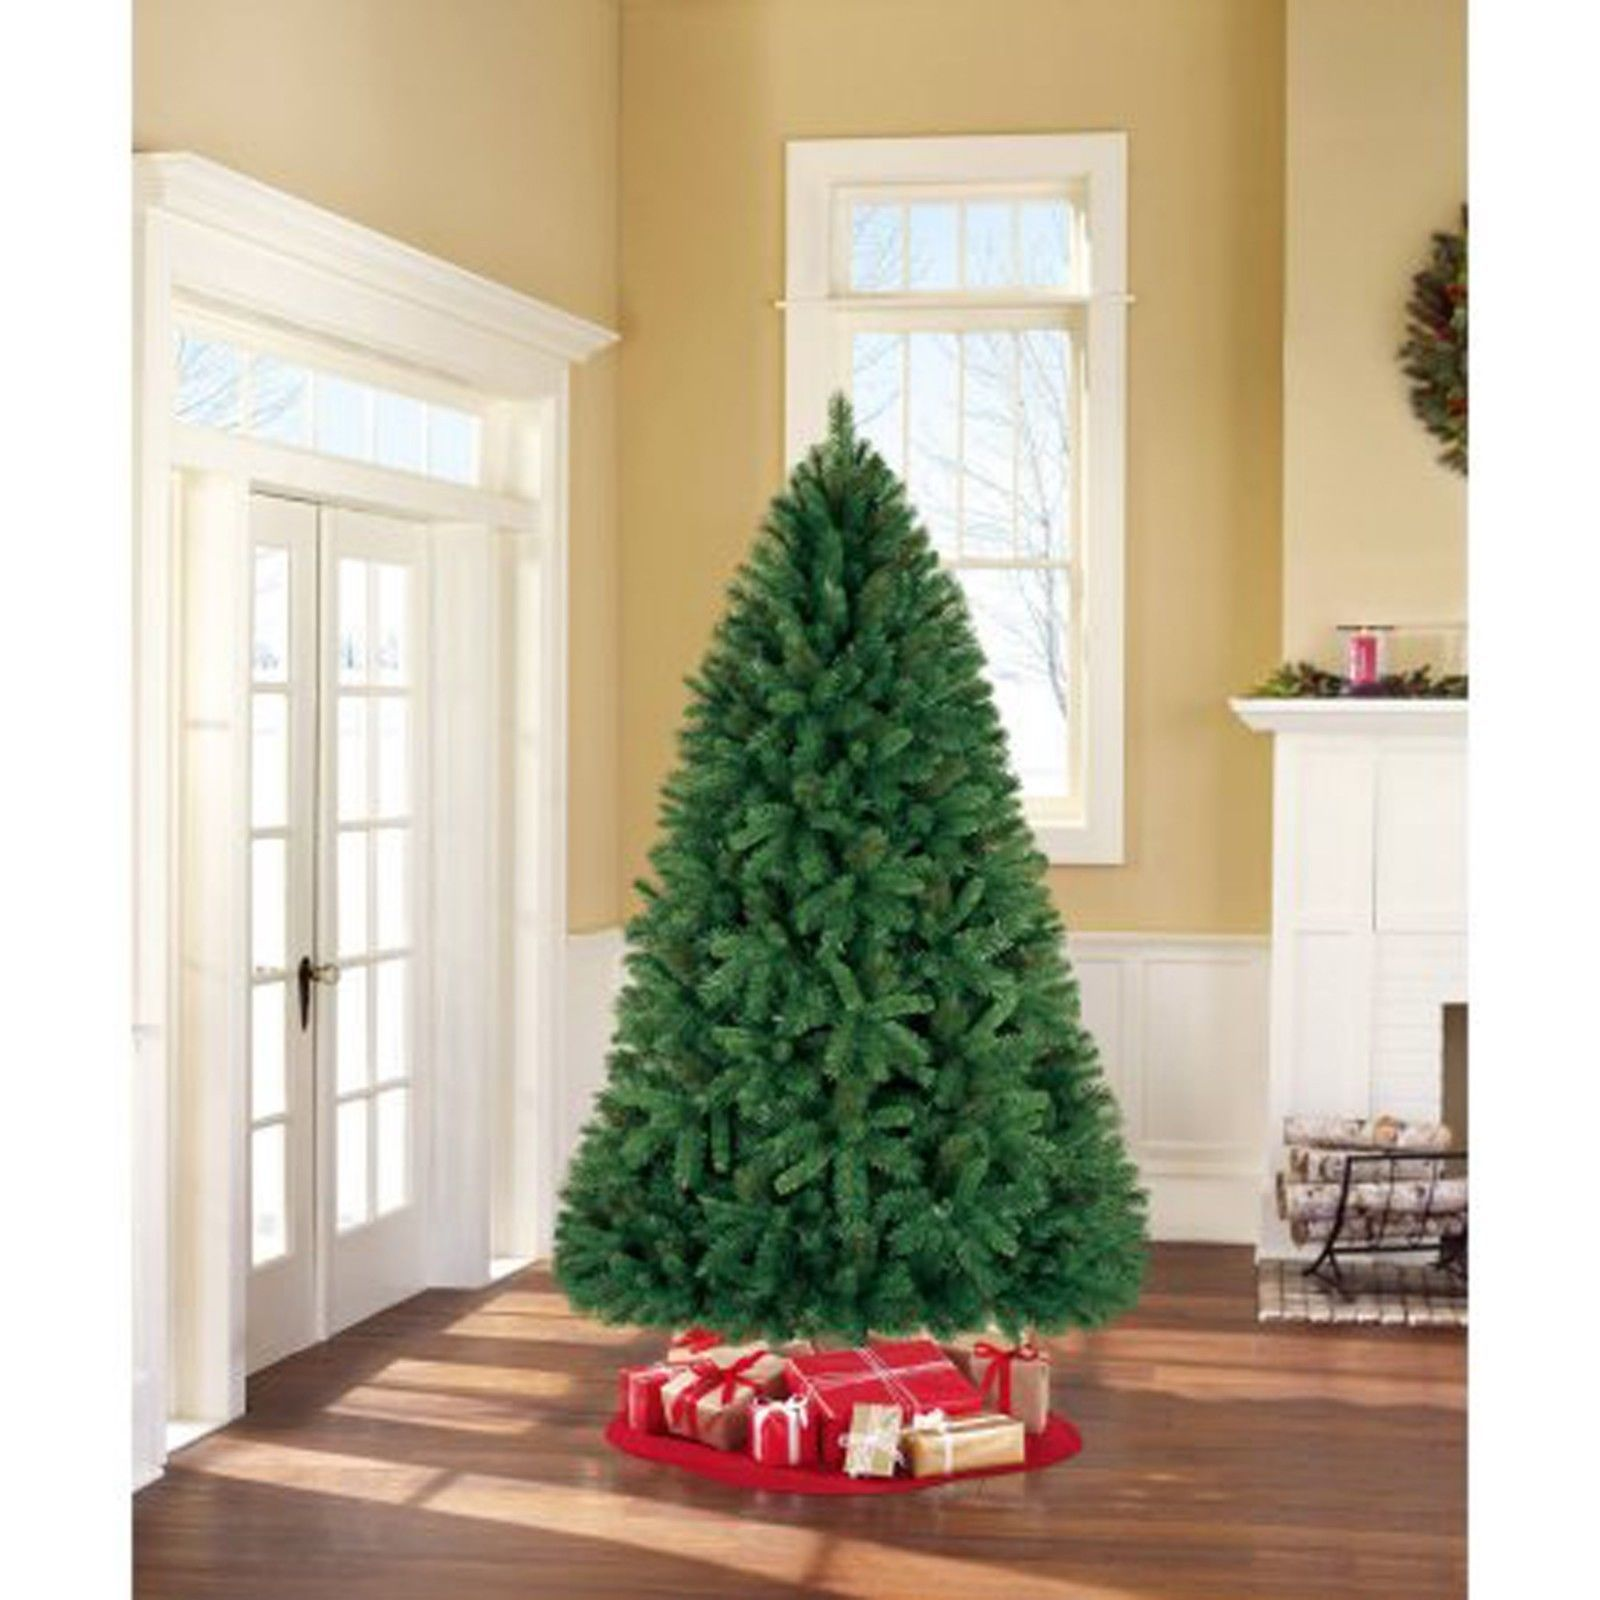 Http Www Bonanza Com Listings Christmas Tree 7 5 Tall Green With Stand Holiday Home Decor Xmas Artificial New 408827756